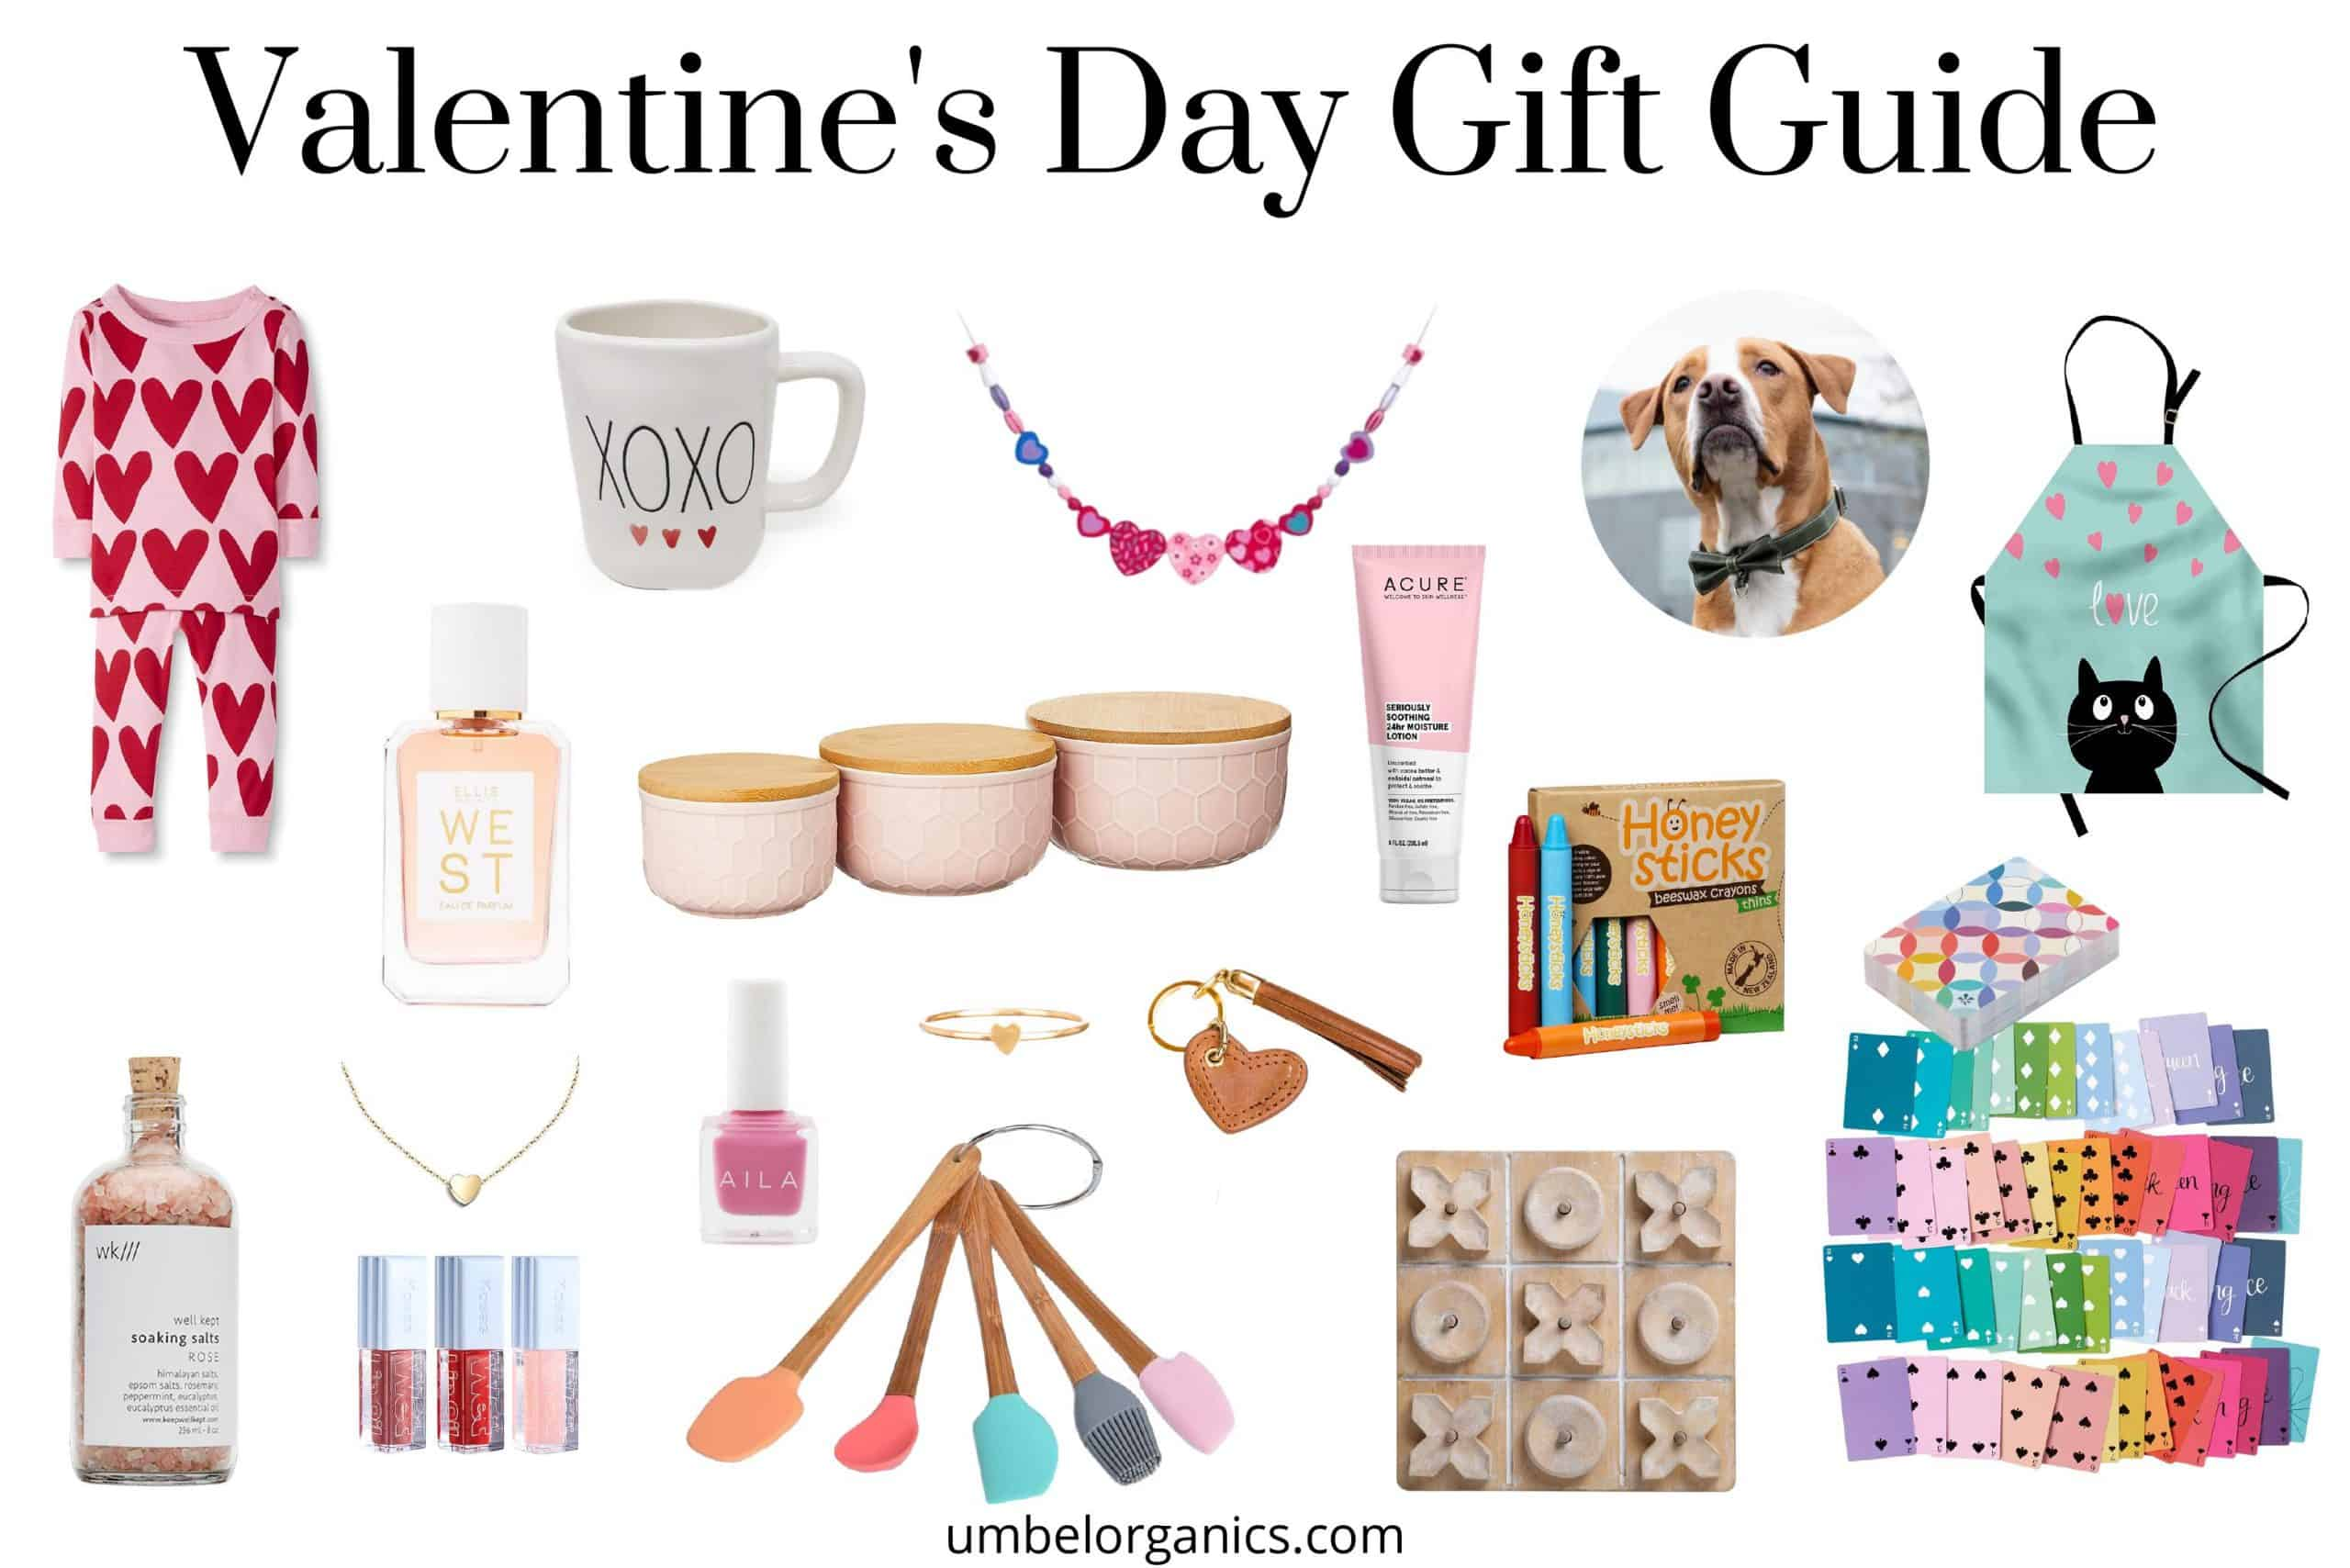 Valentine's Day Gift Guide with gifts for the whole family like games for kids and clean makeup and kitchen accessories